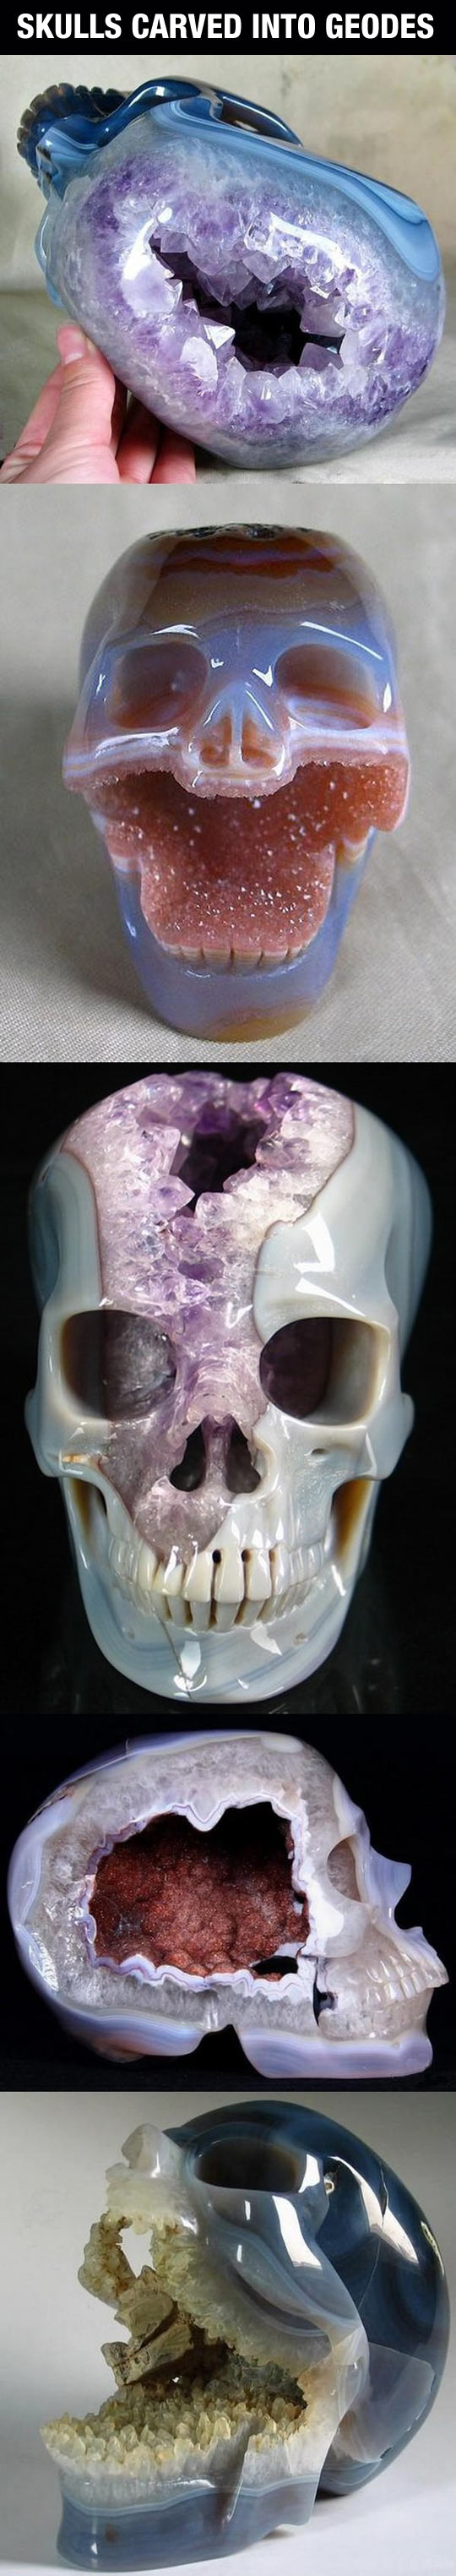 geodes-skull-carving-stones-art-colors